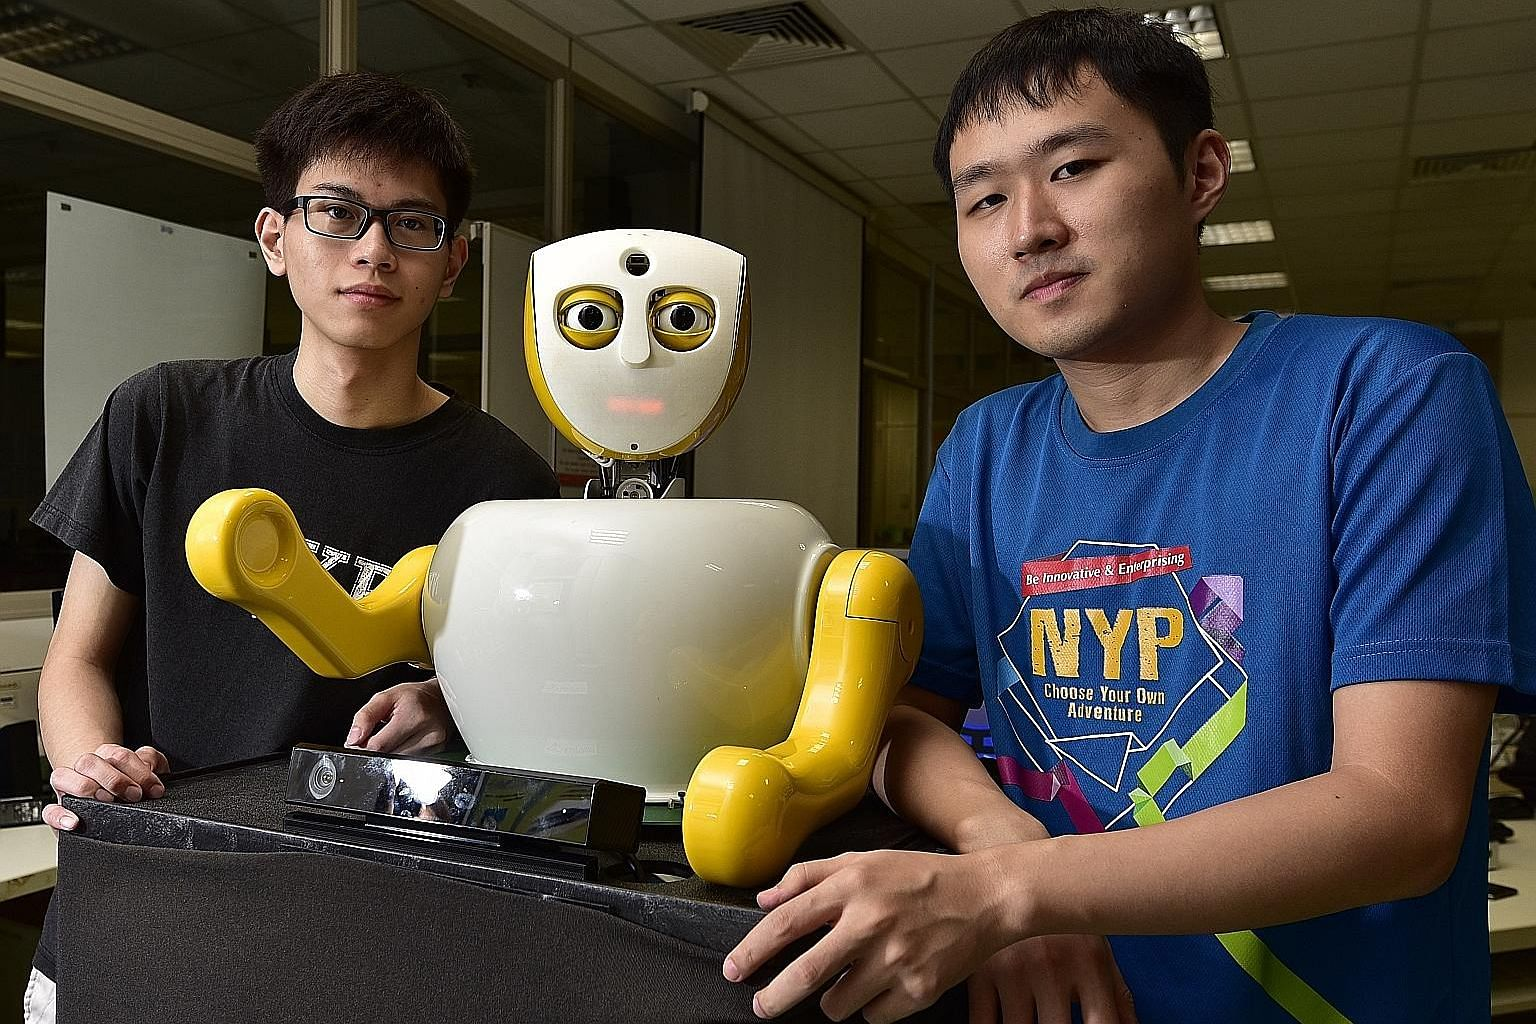 Mr Francis Swee, 20 (left), and Mr Yu Zhigang, 22, with Ruth. The two students from Nanyang Polytechnic make up half of Team Yuuy, which came up with Singapore's newest social robot. Ruth is designed to act like a human being and intended to eventual